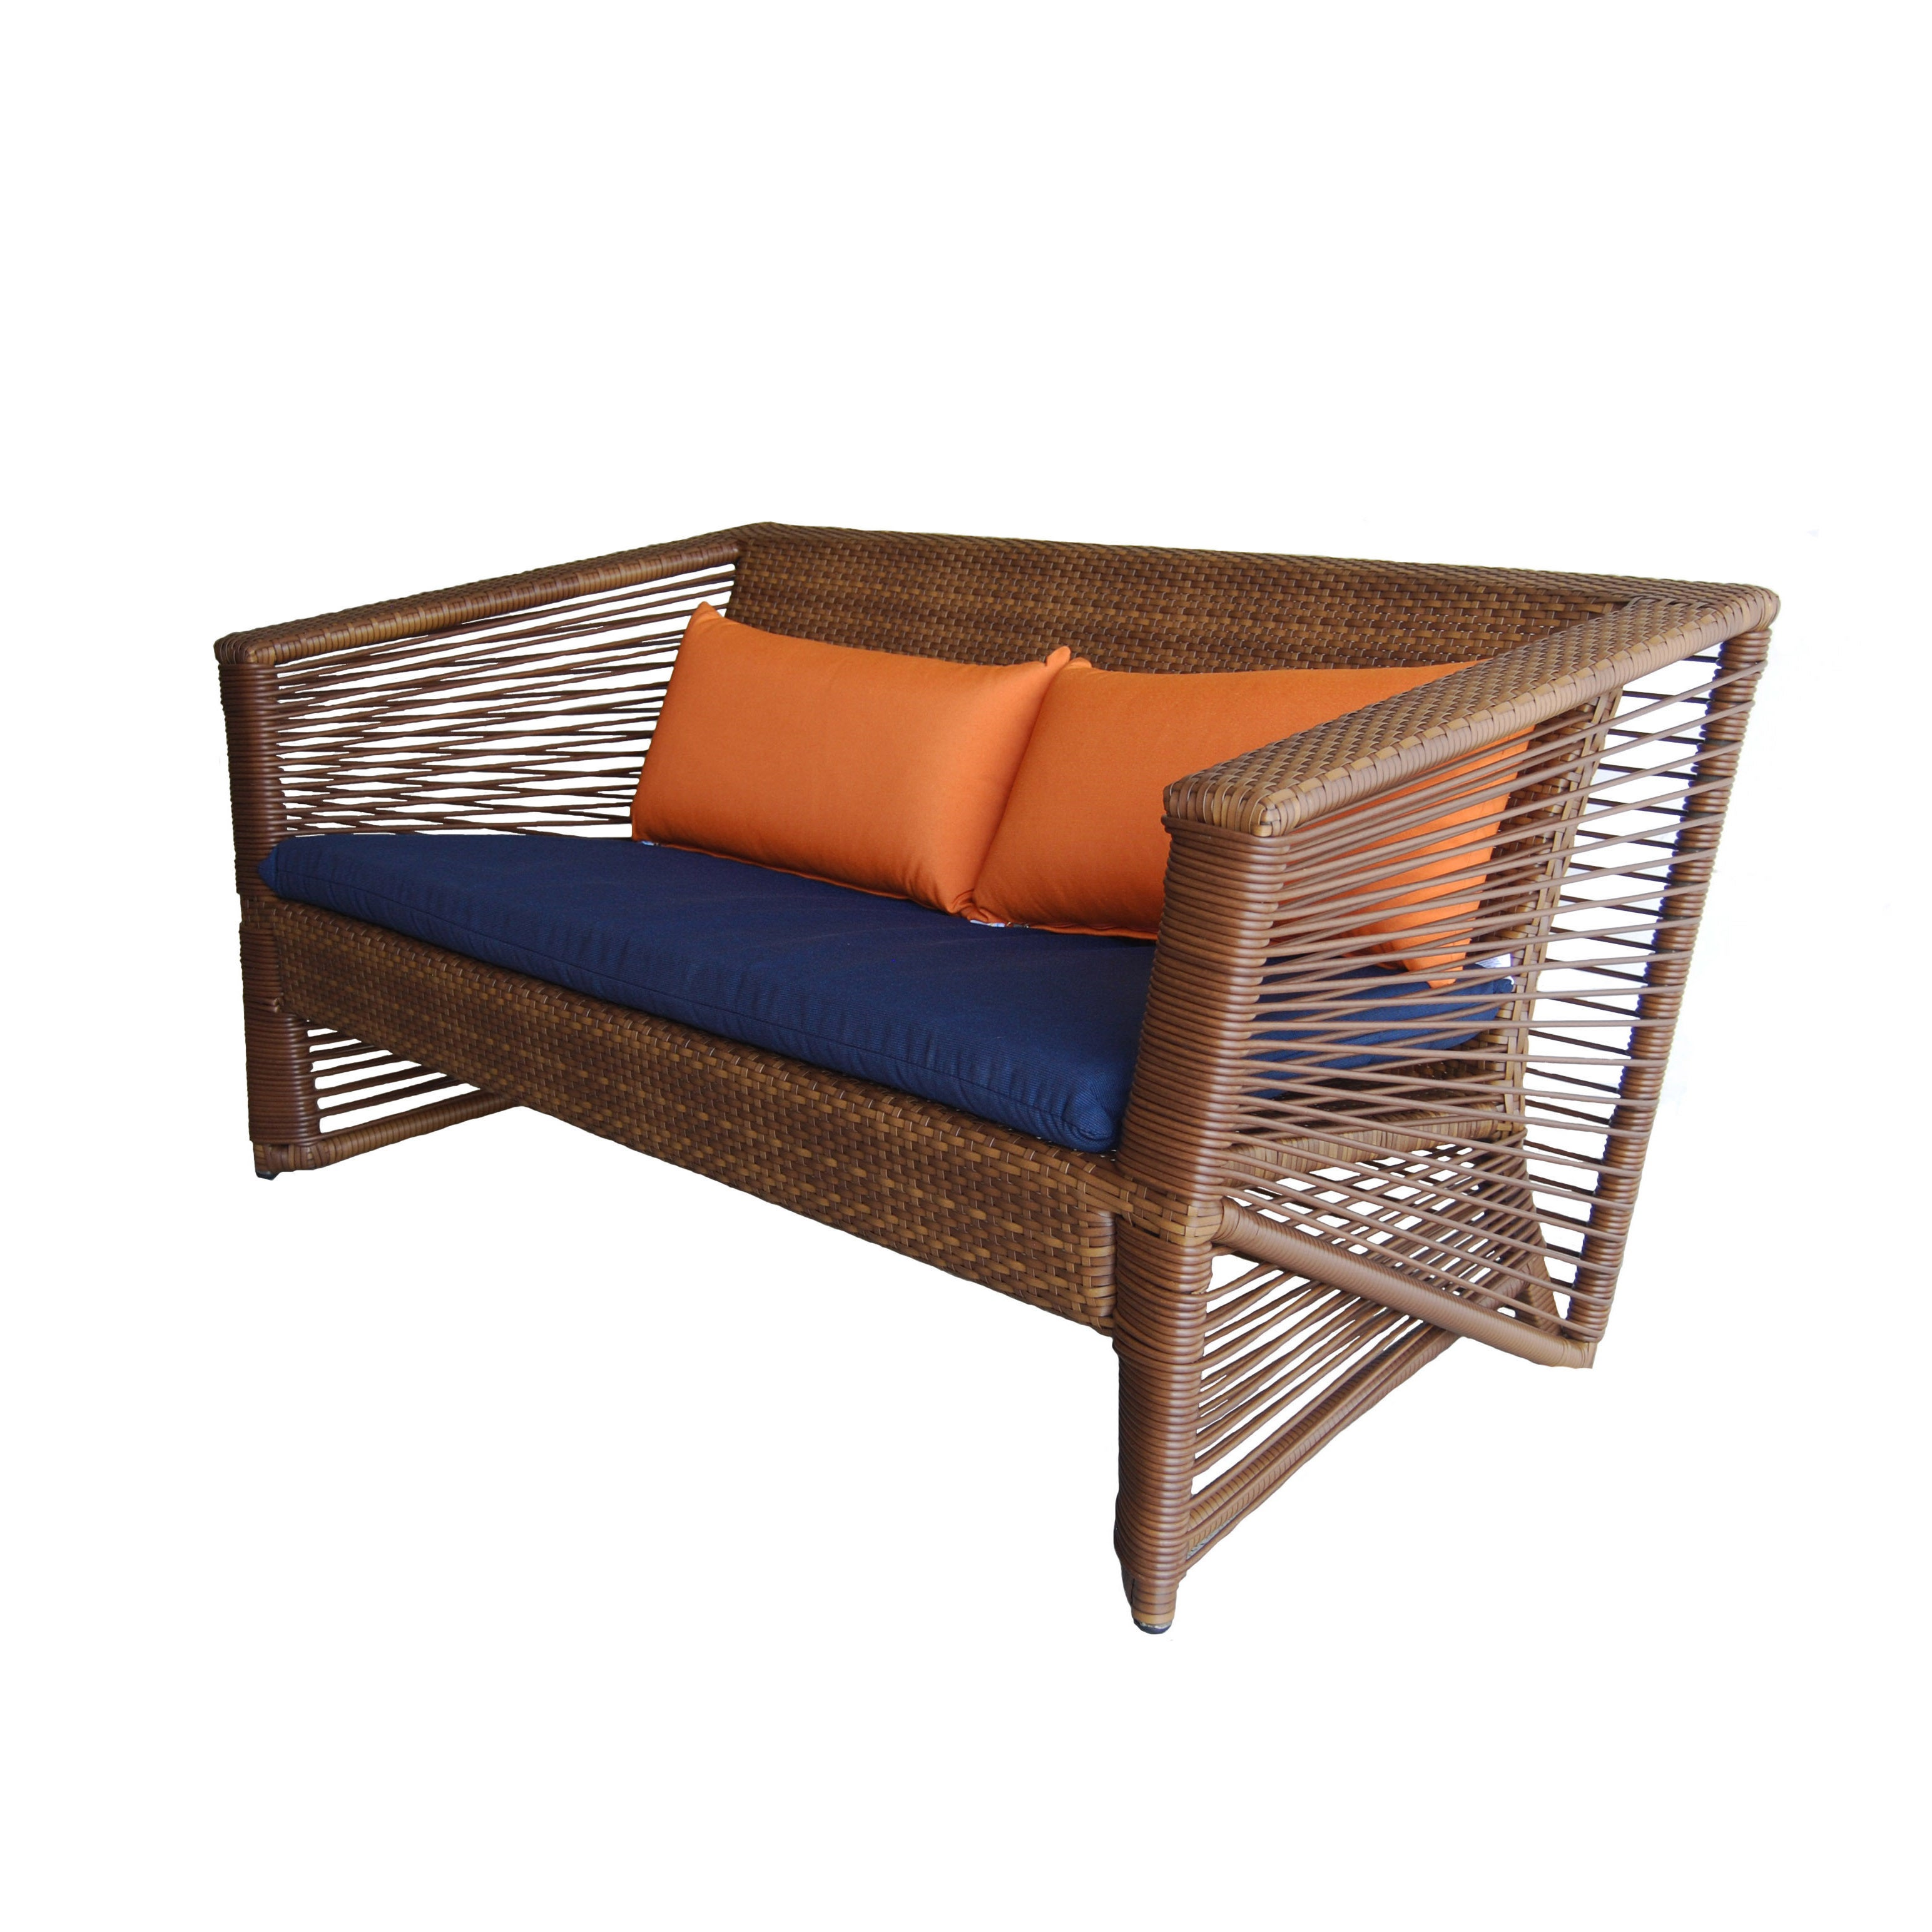 Pleasing Borneo Outdoor Resin Wicker Sofa Gmtry Best Dining Table And Chair Ideas Images Gmtryco